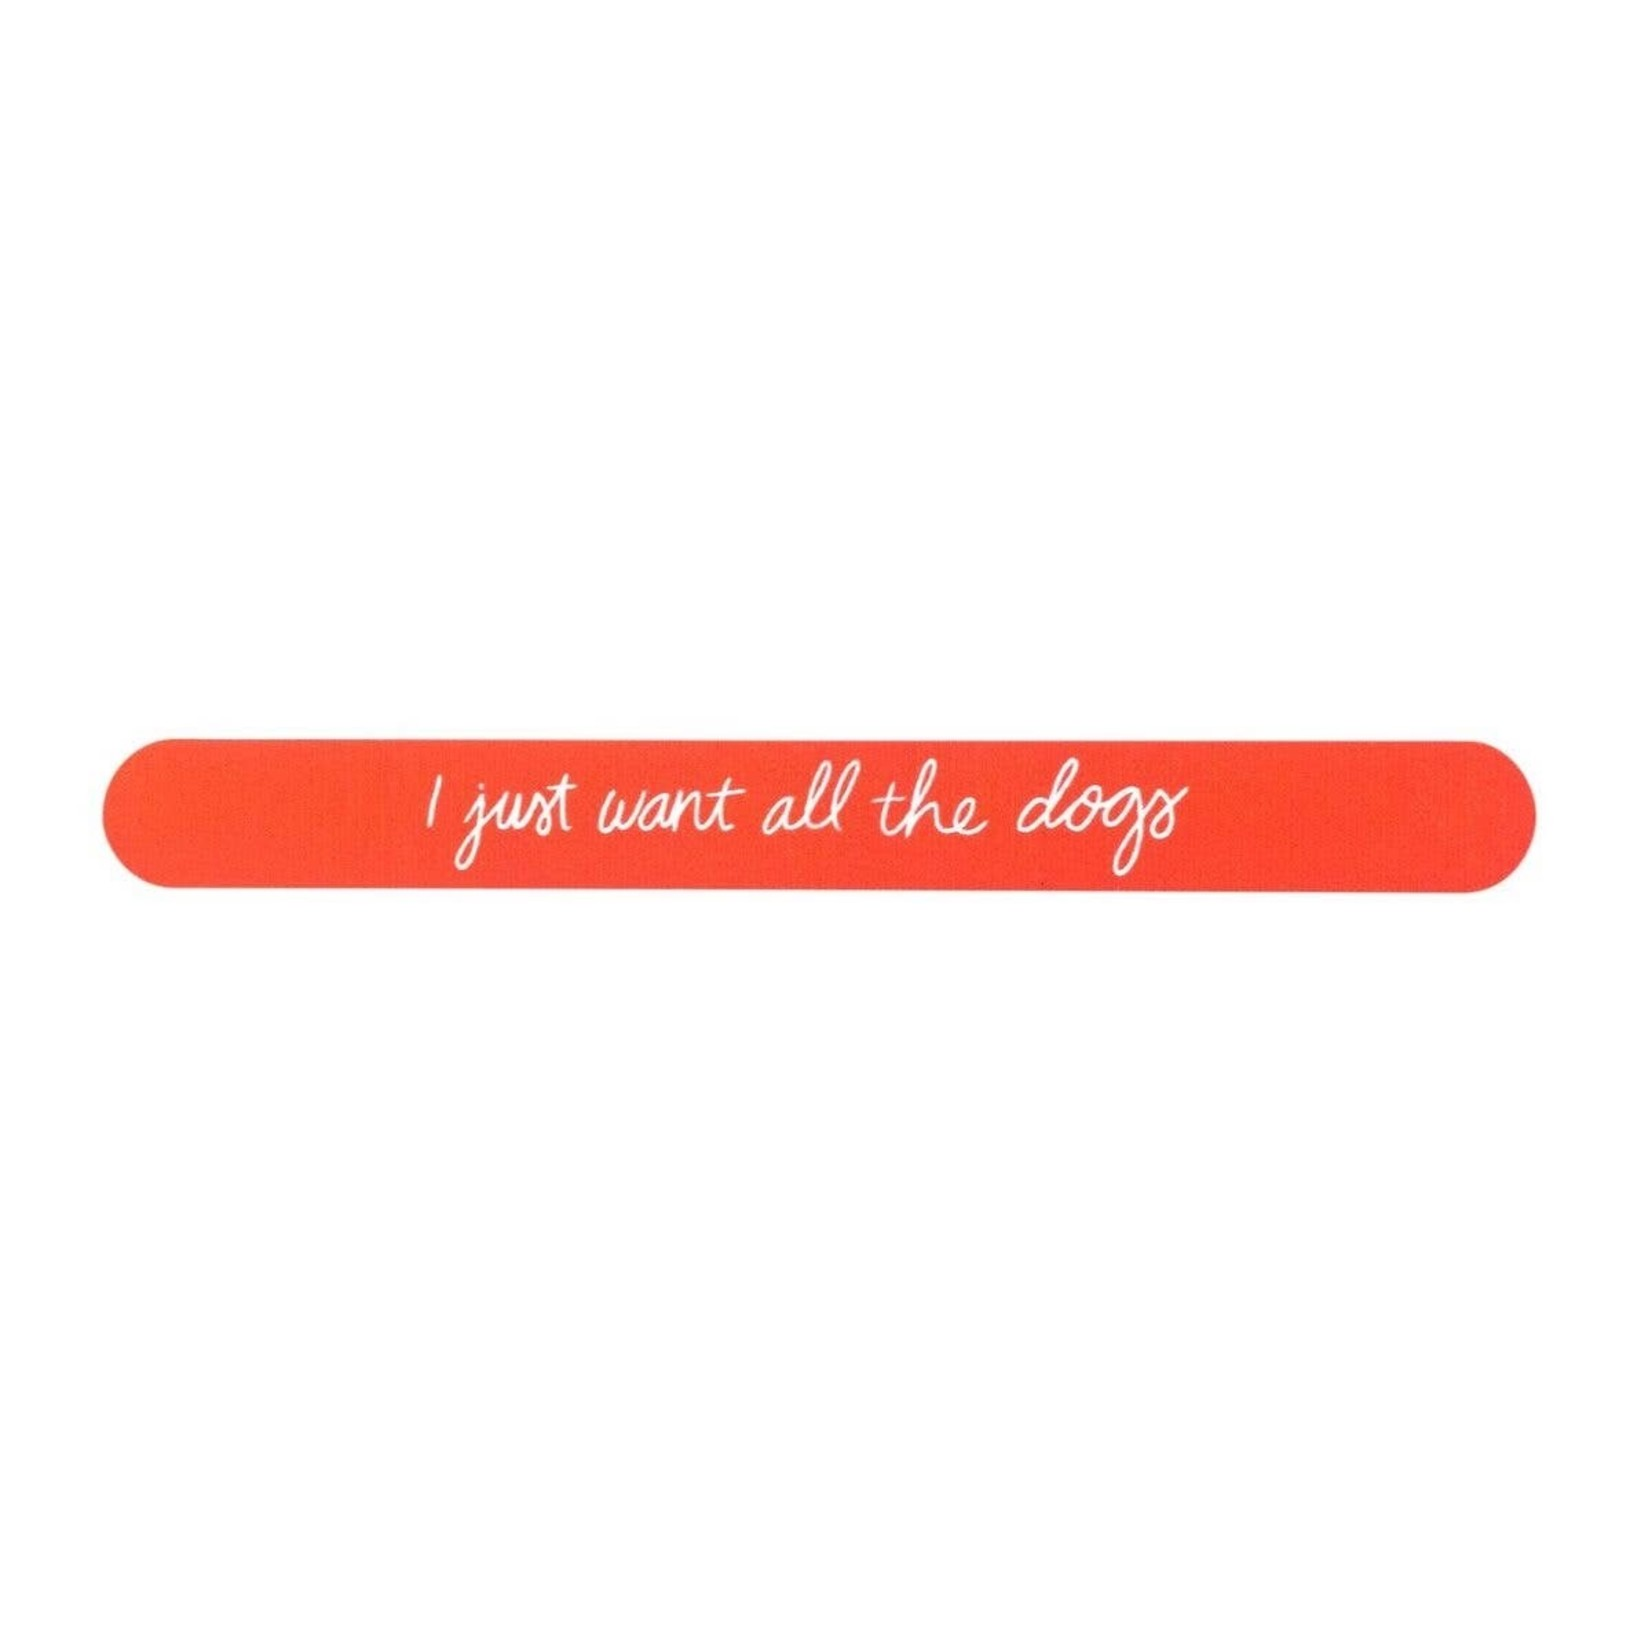 About Face Designs, Inc Pet: All the Dogs Nail File